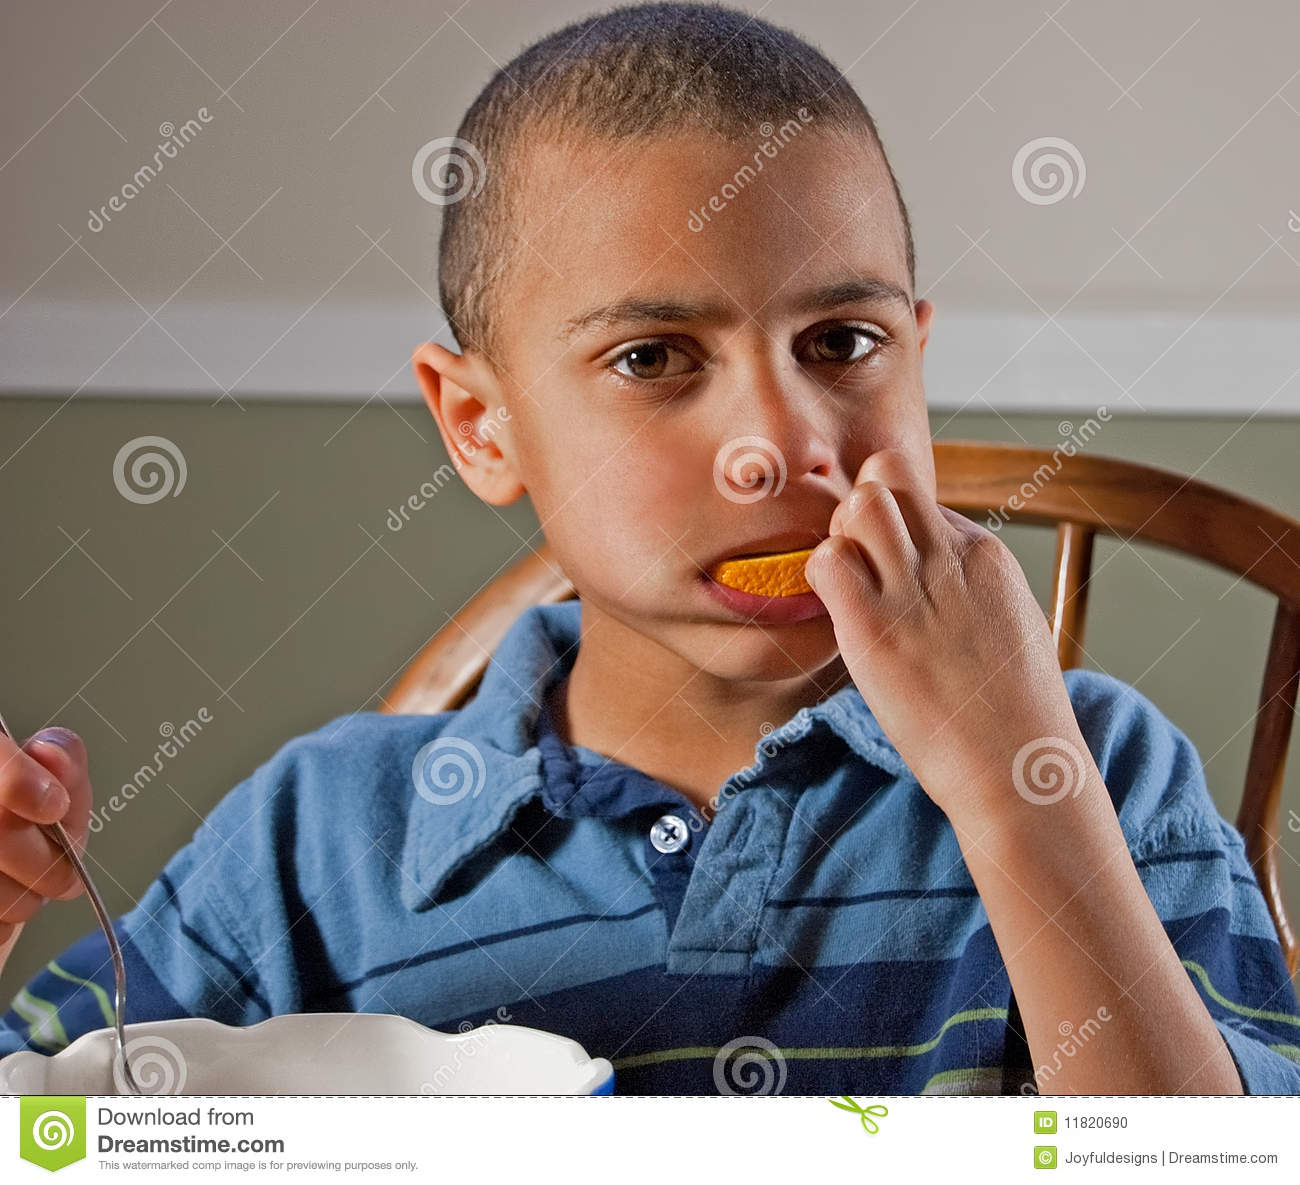 Cute BiRacial Boy Eating Orange Stock Photo  Image 11820690